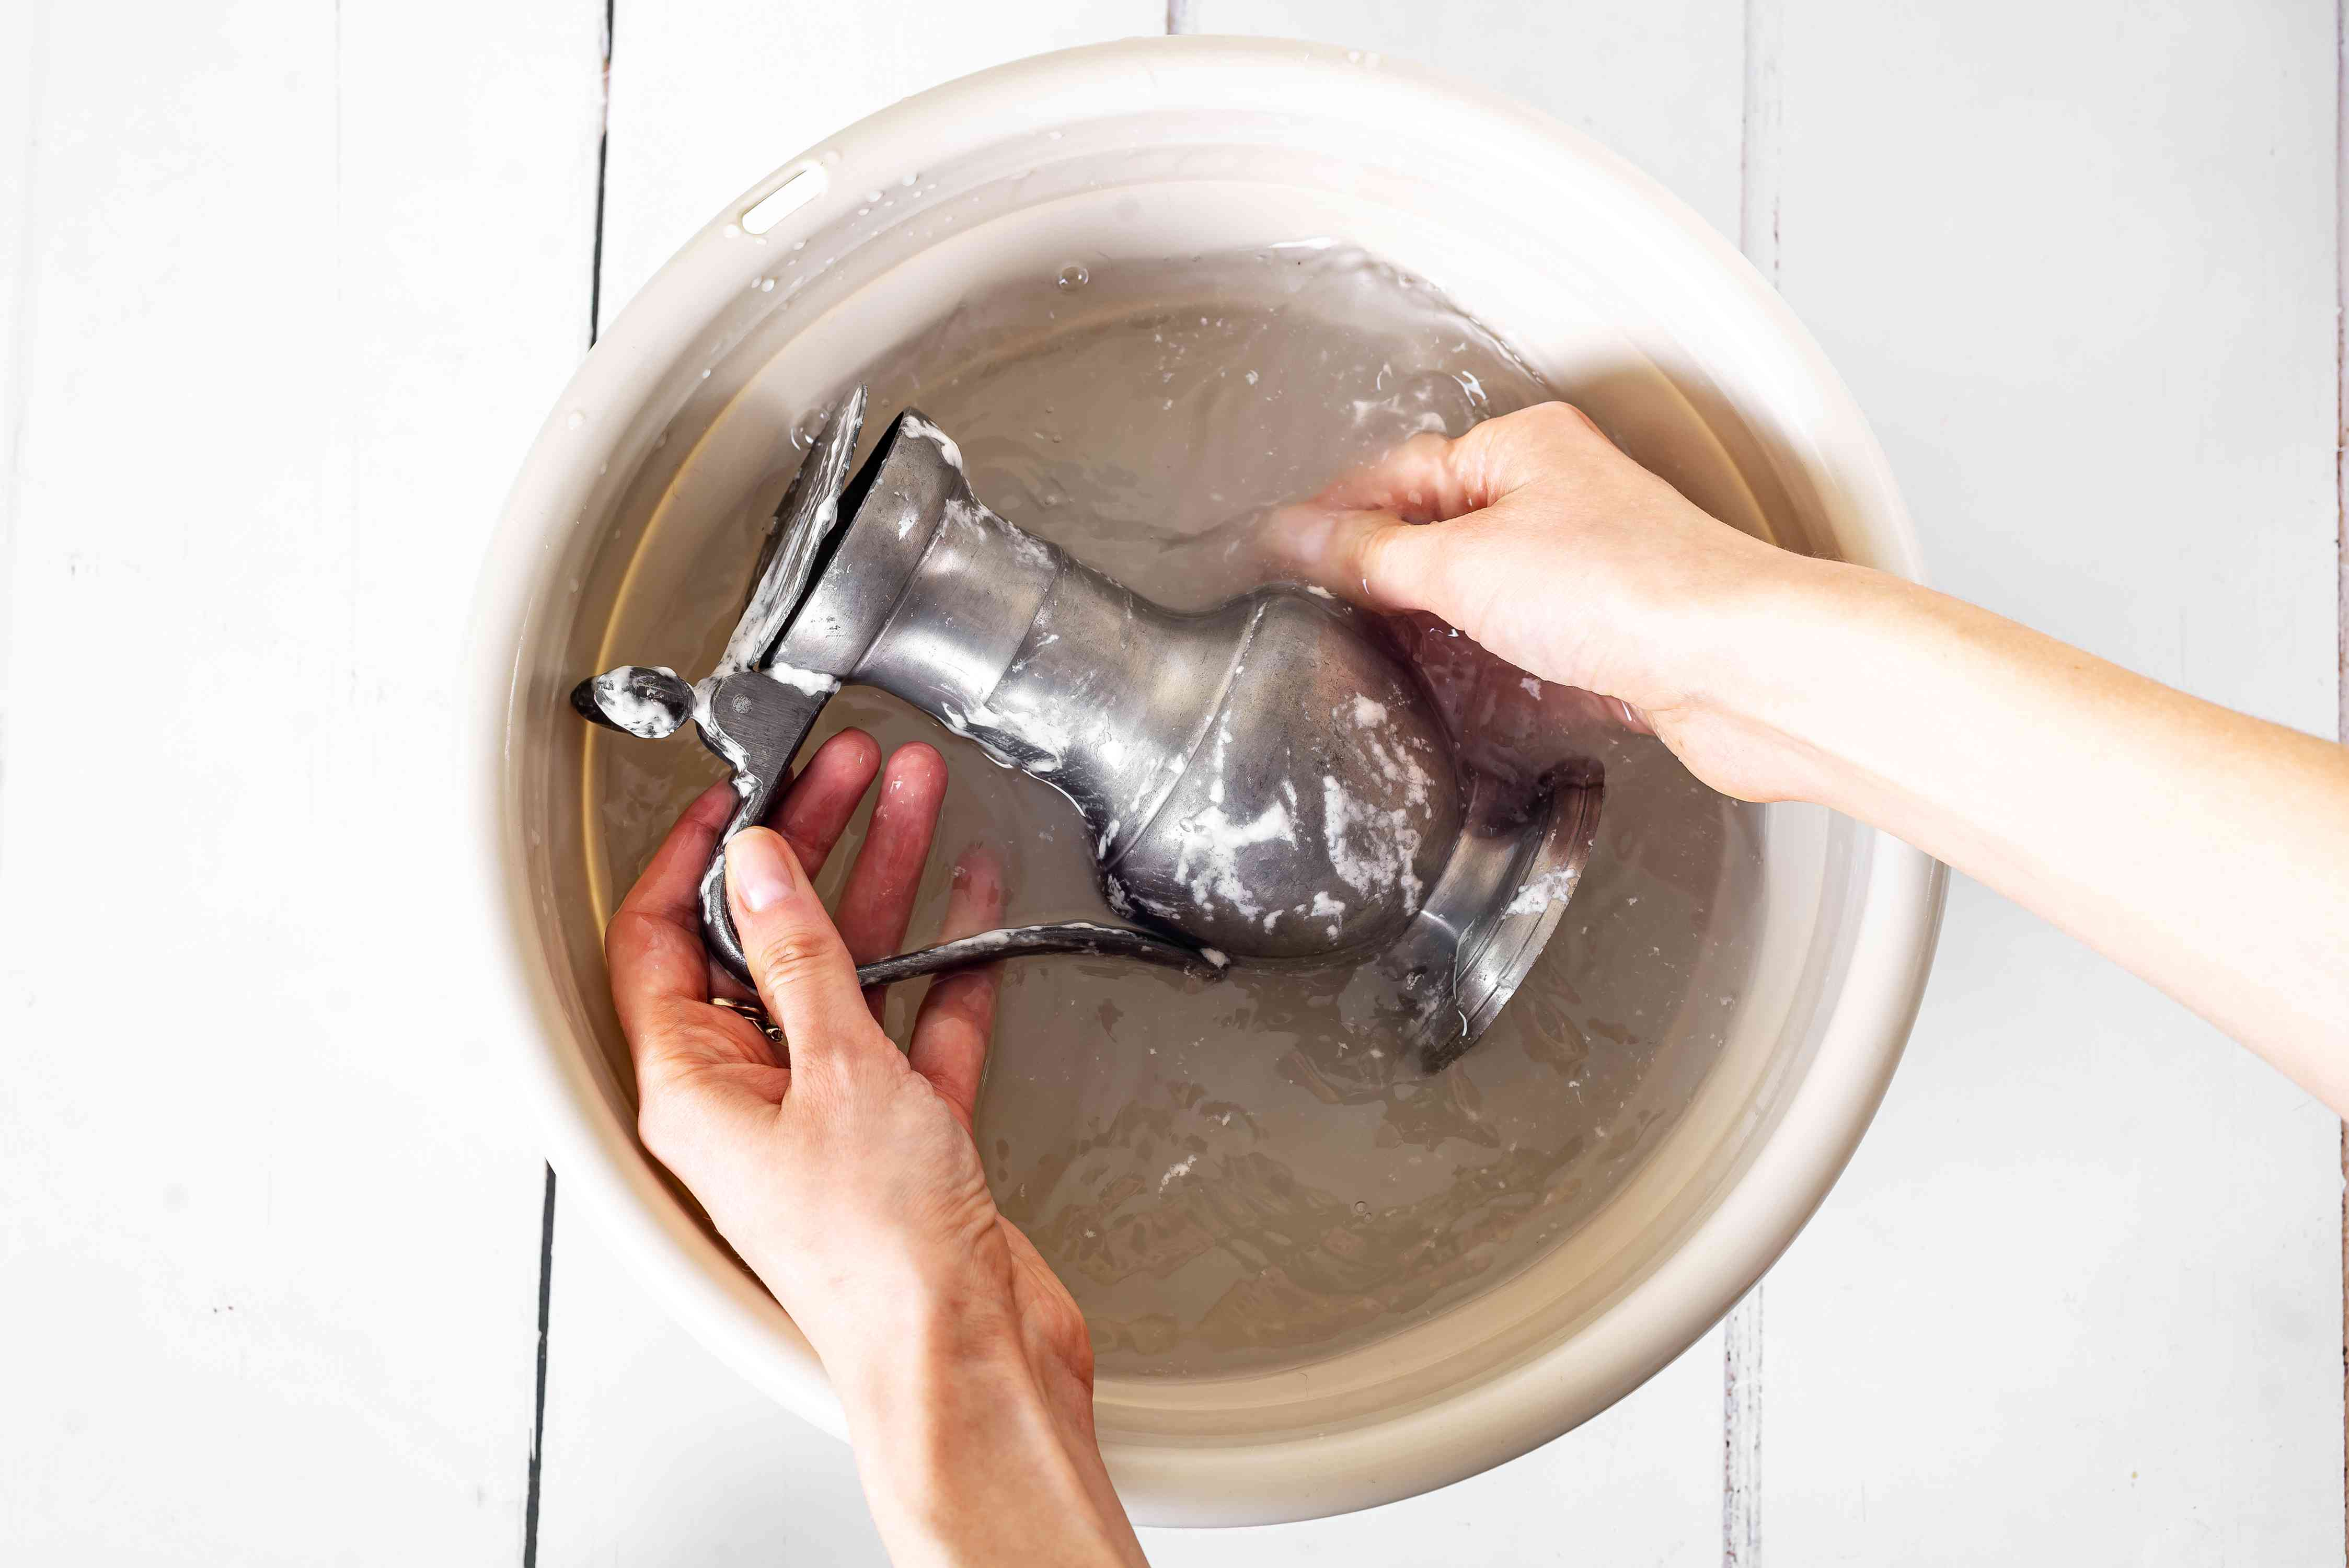 Pewter dispenser rinsed in bucket with clean water